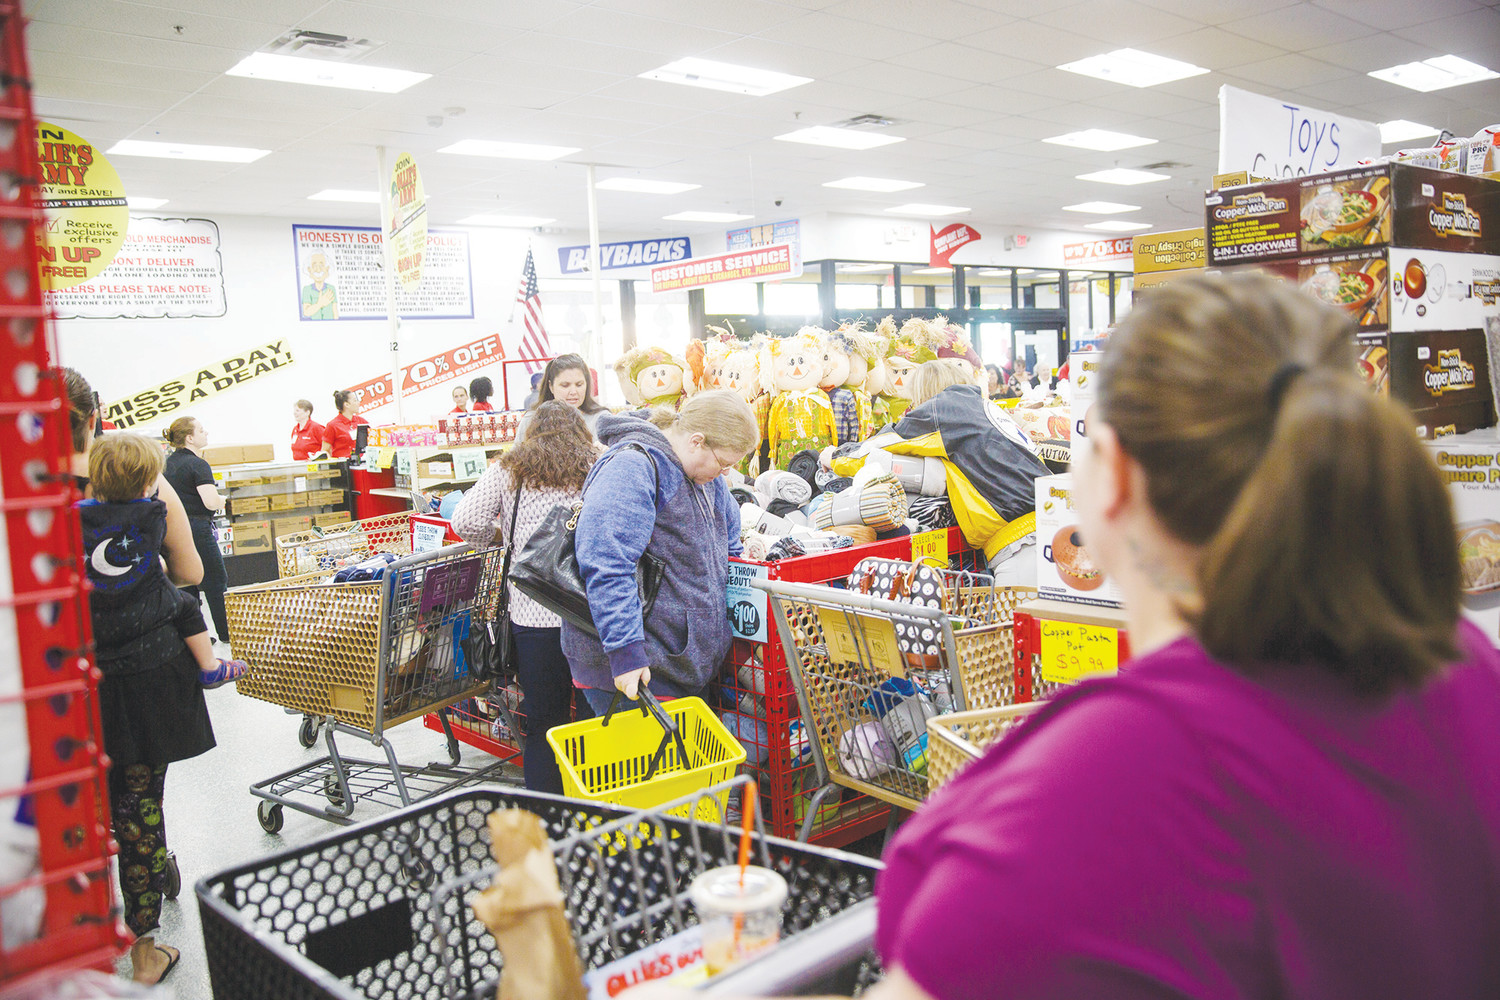 Customers stormed to the $1 fleece throw bin Wednesday morning at the grand opening of Ollie's Bargain Outlet on Blanding Blvd. in Orange Park.